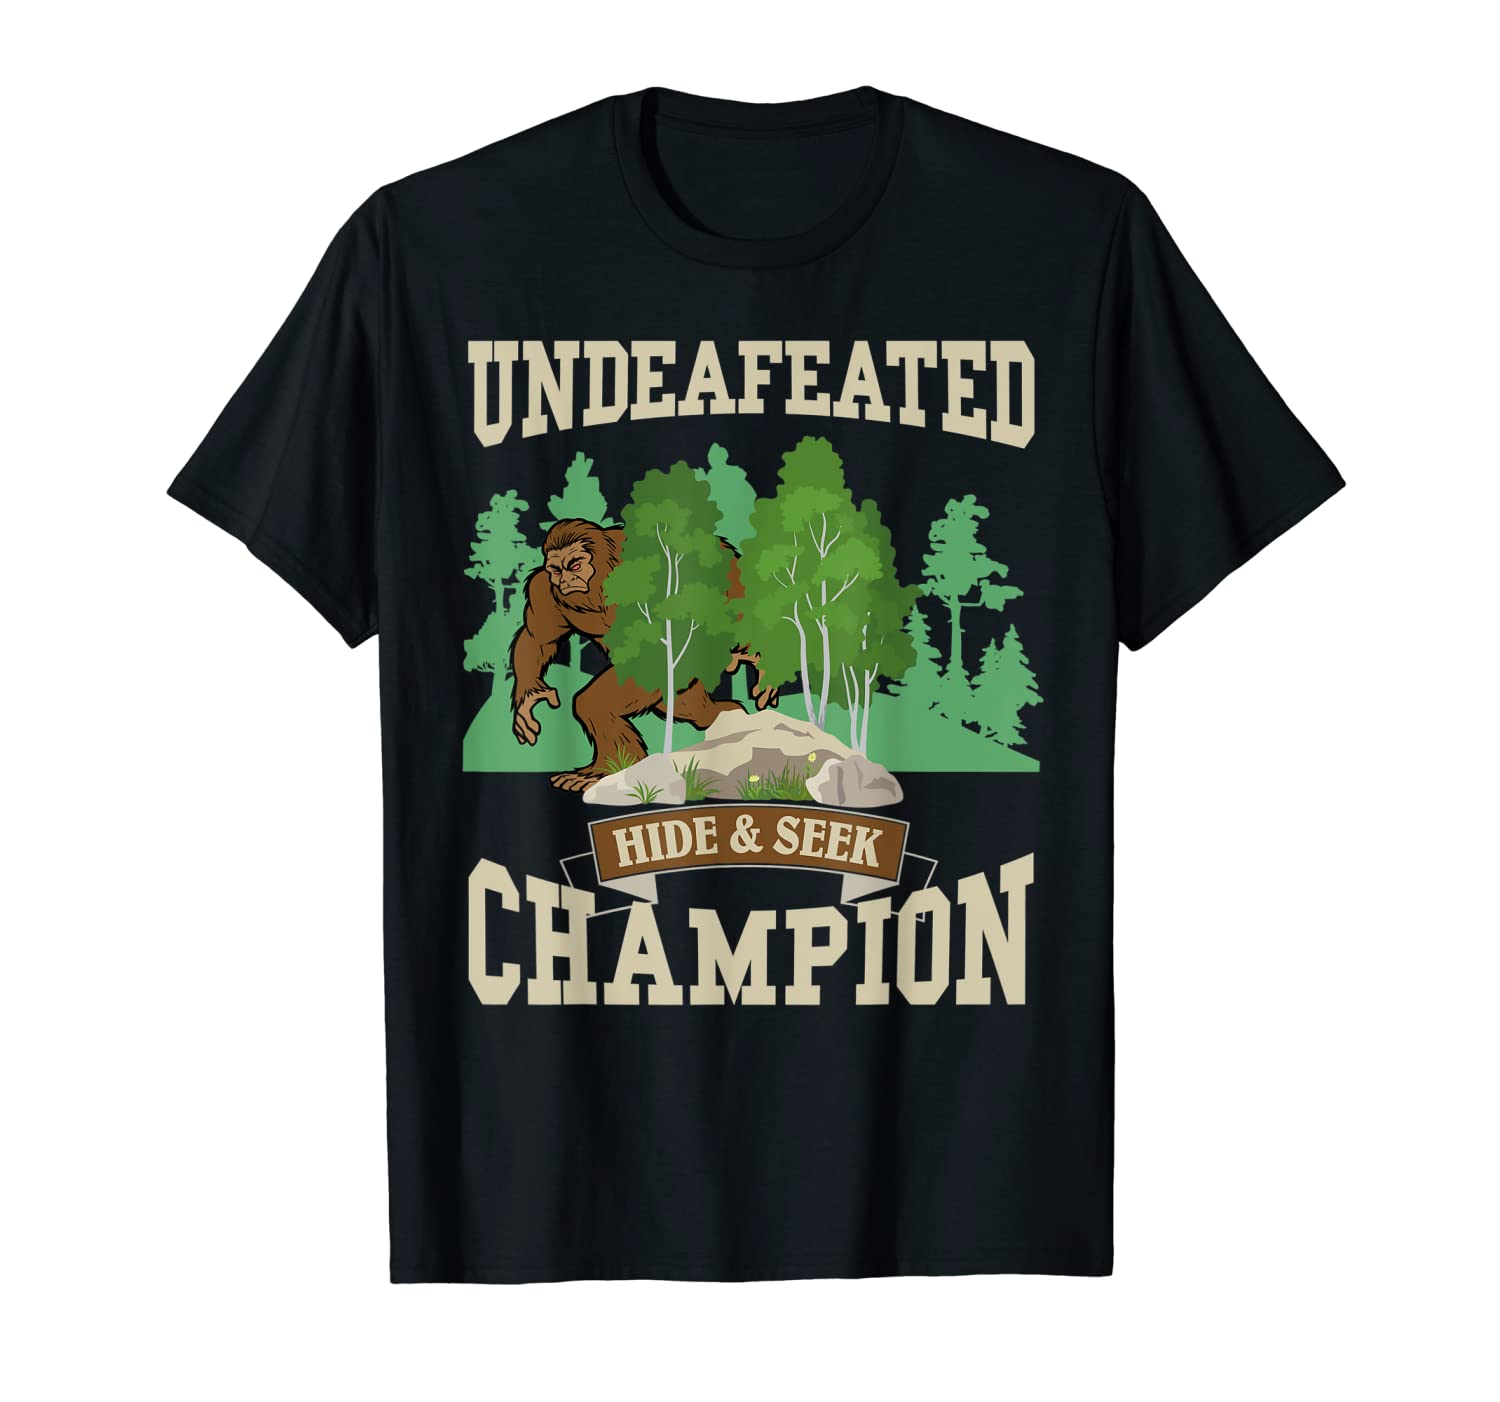 dcbc19a4a Amazon.com: Funny Bigfoot Yeti Undefeated Hide & Seek Champion T-Shirt:  Clothing